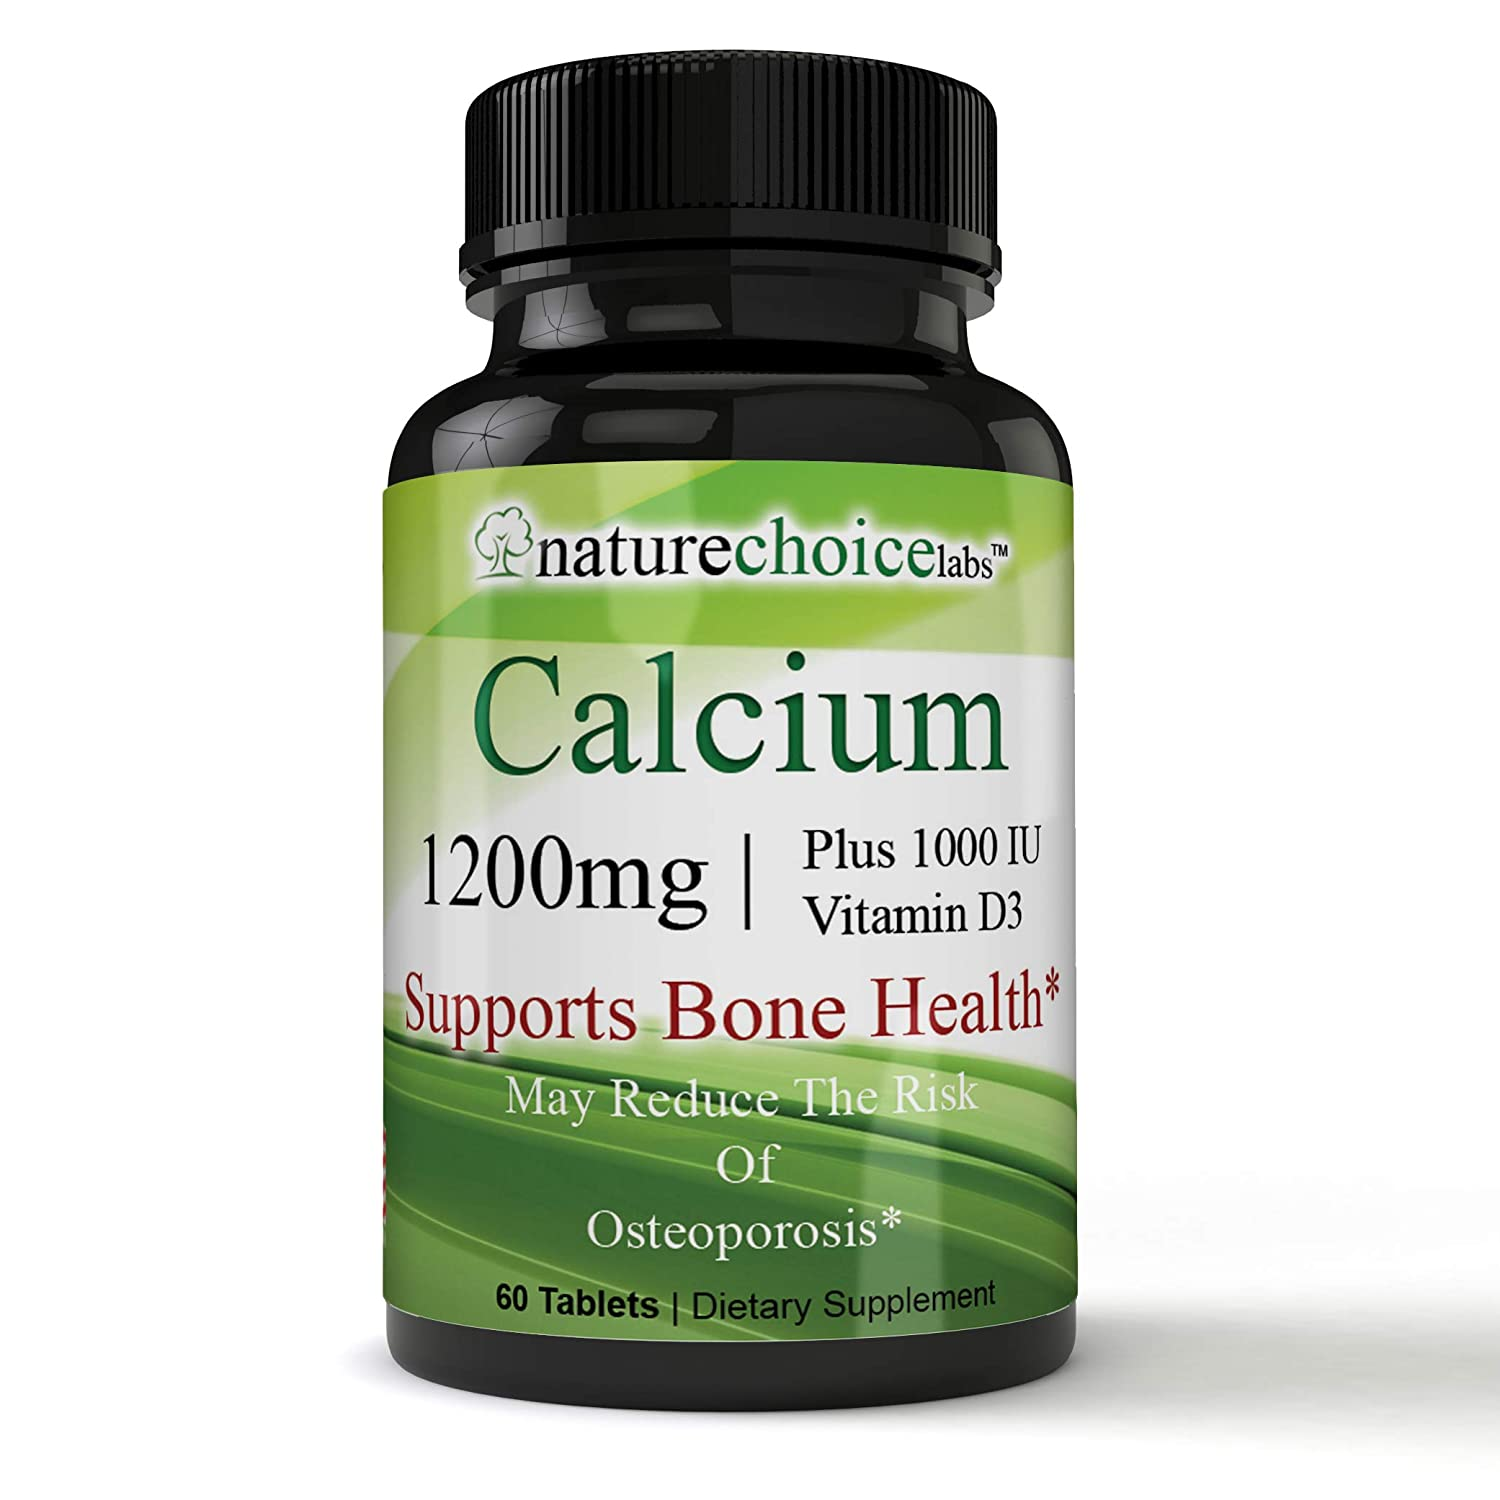 Pharmaceutical-Strength Essential Minerals Plant Based Calcium Supplement with Vitamin D3 - Bone Strength Clinical Strength with Vitamin D3